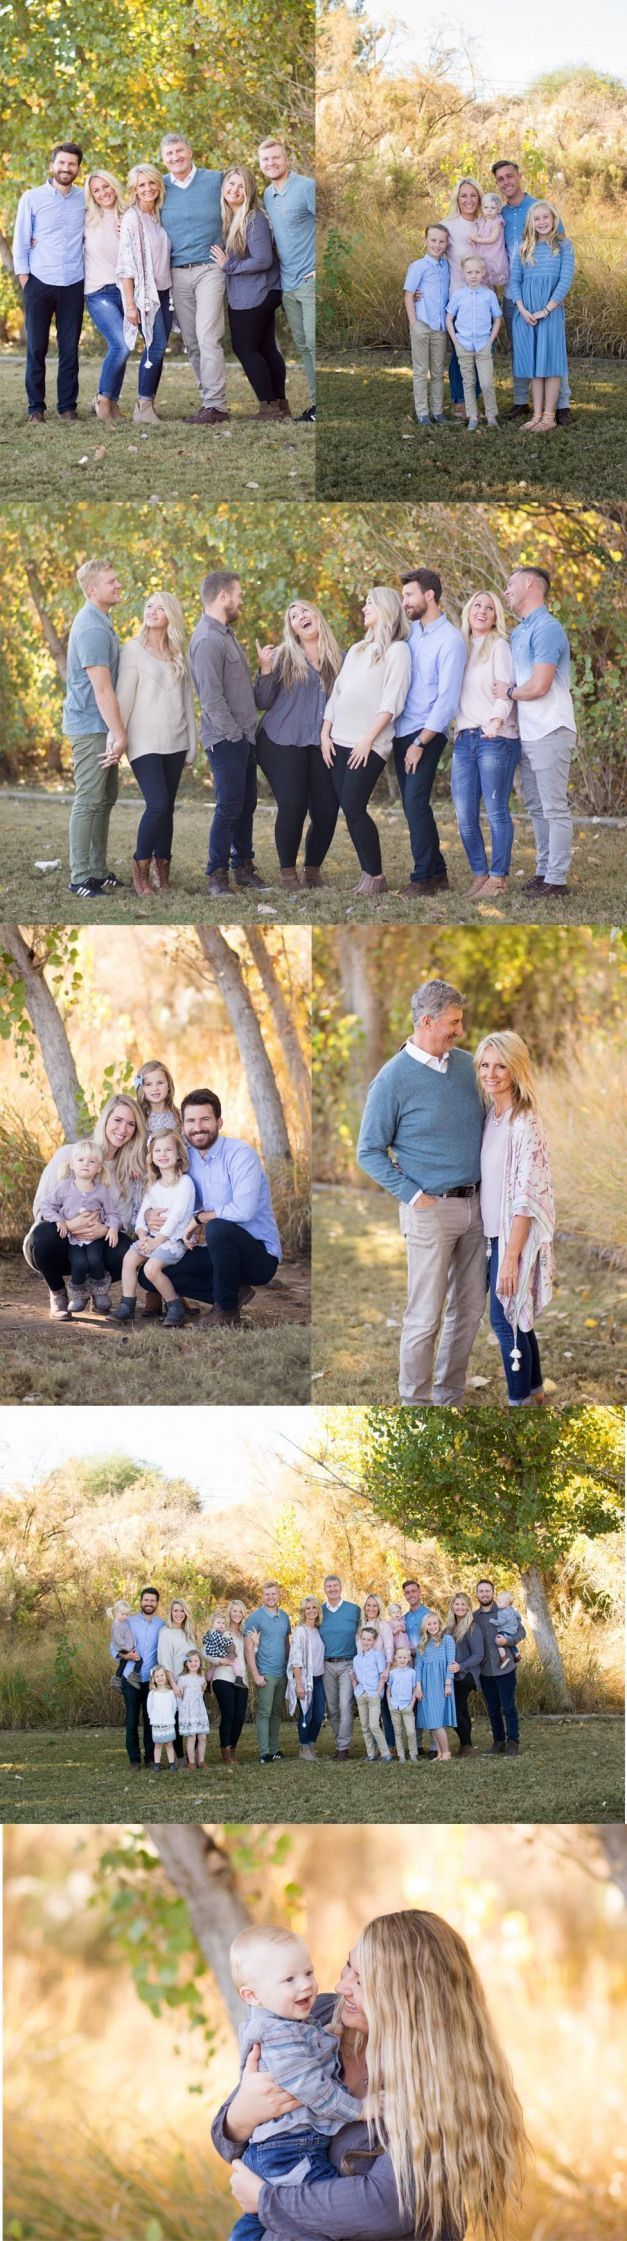 Extended family portrait session in light blues and blush.  Photographed at Nichols Park in Gilbert AZ by Arizona family portrait photographer Melissa Maxwell of Jubilee Family Photography. #familyphotography #family #photography #what #to #wear #extendedfamilyphotography Extended family portrait session in light blues and blush.  Photographed at Nichols Park in Gilbert AZ by Arizona family portrait photographer Melissa Maxwell of Jubilee Family Photography. #familyphotography #family #photograp #extendedfamilyphotography